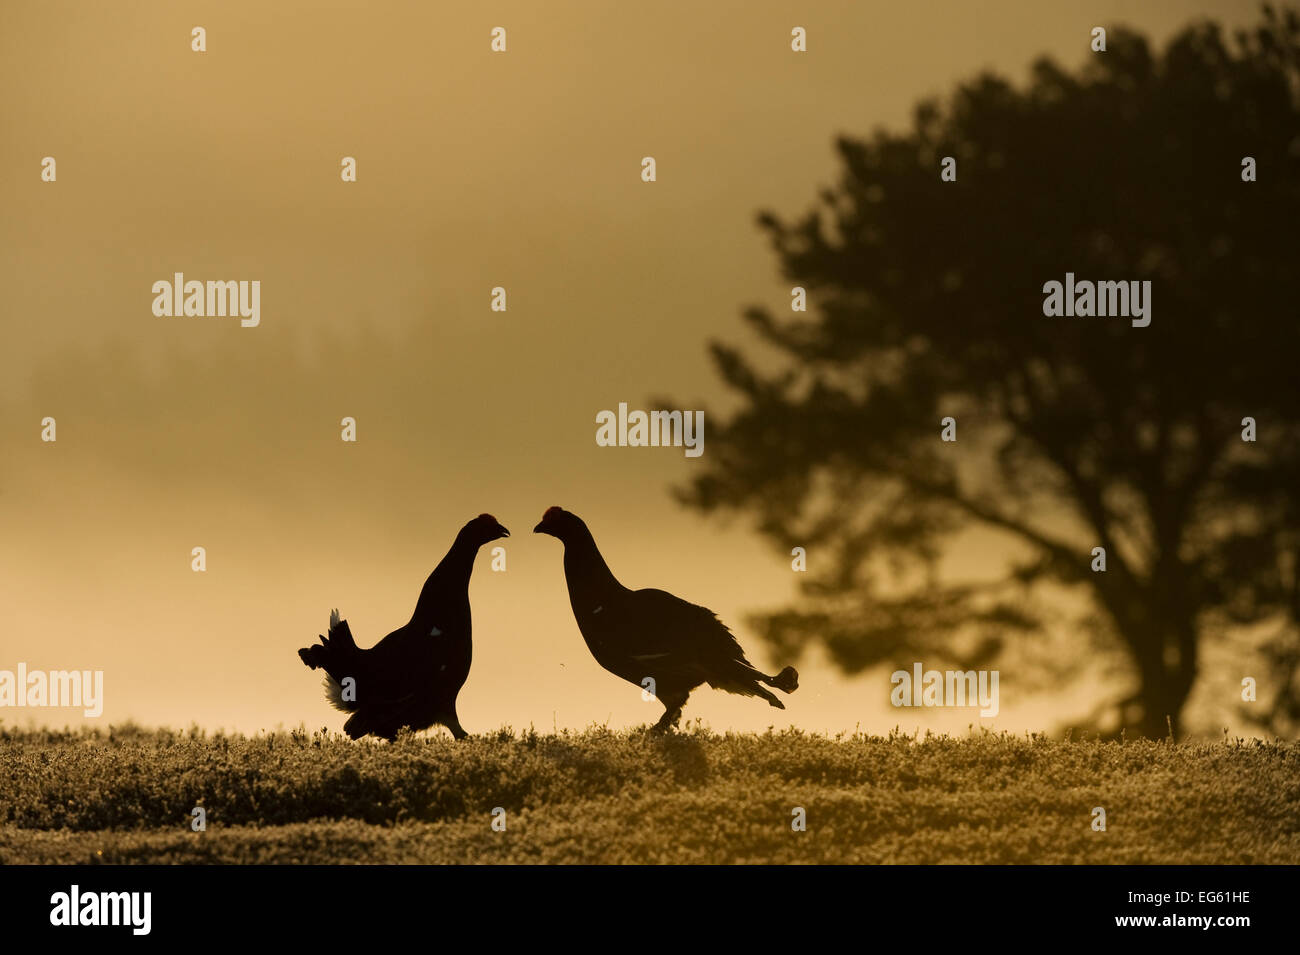 Silhouette of two male Black grouse (Tetrao tetrix) displaying at lek at dawn, Cairngorms NP, Grampian, Scotland, - Stock Image